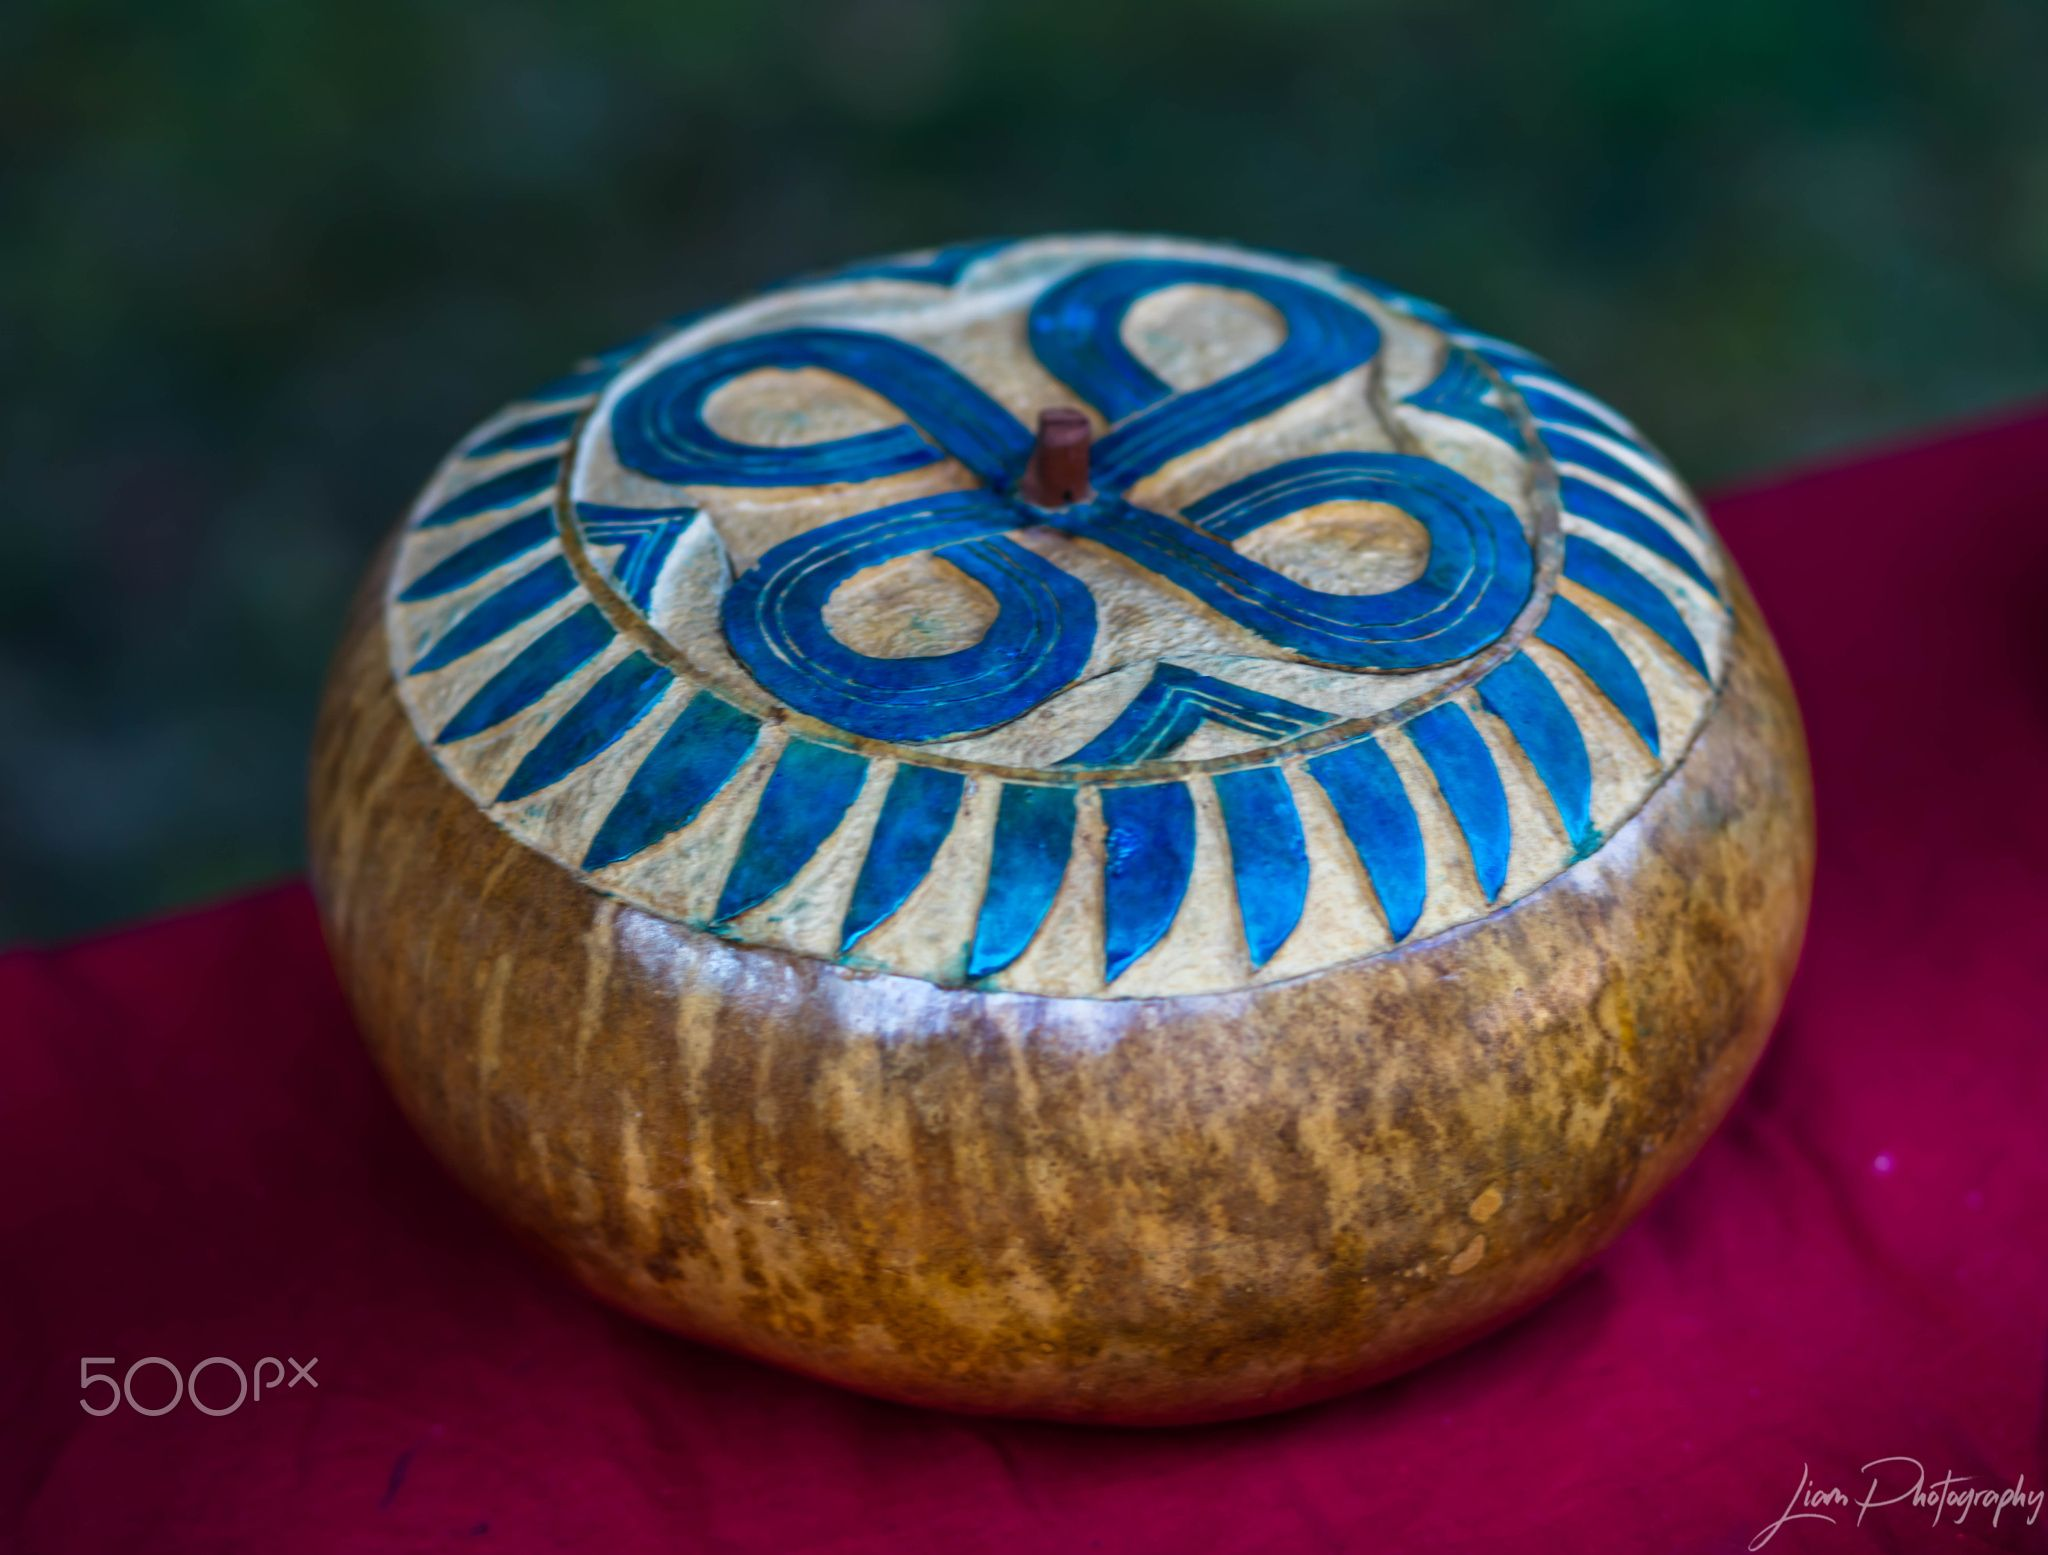 Carved Bowl - This is a Native American bowl carved out with a lid.